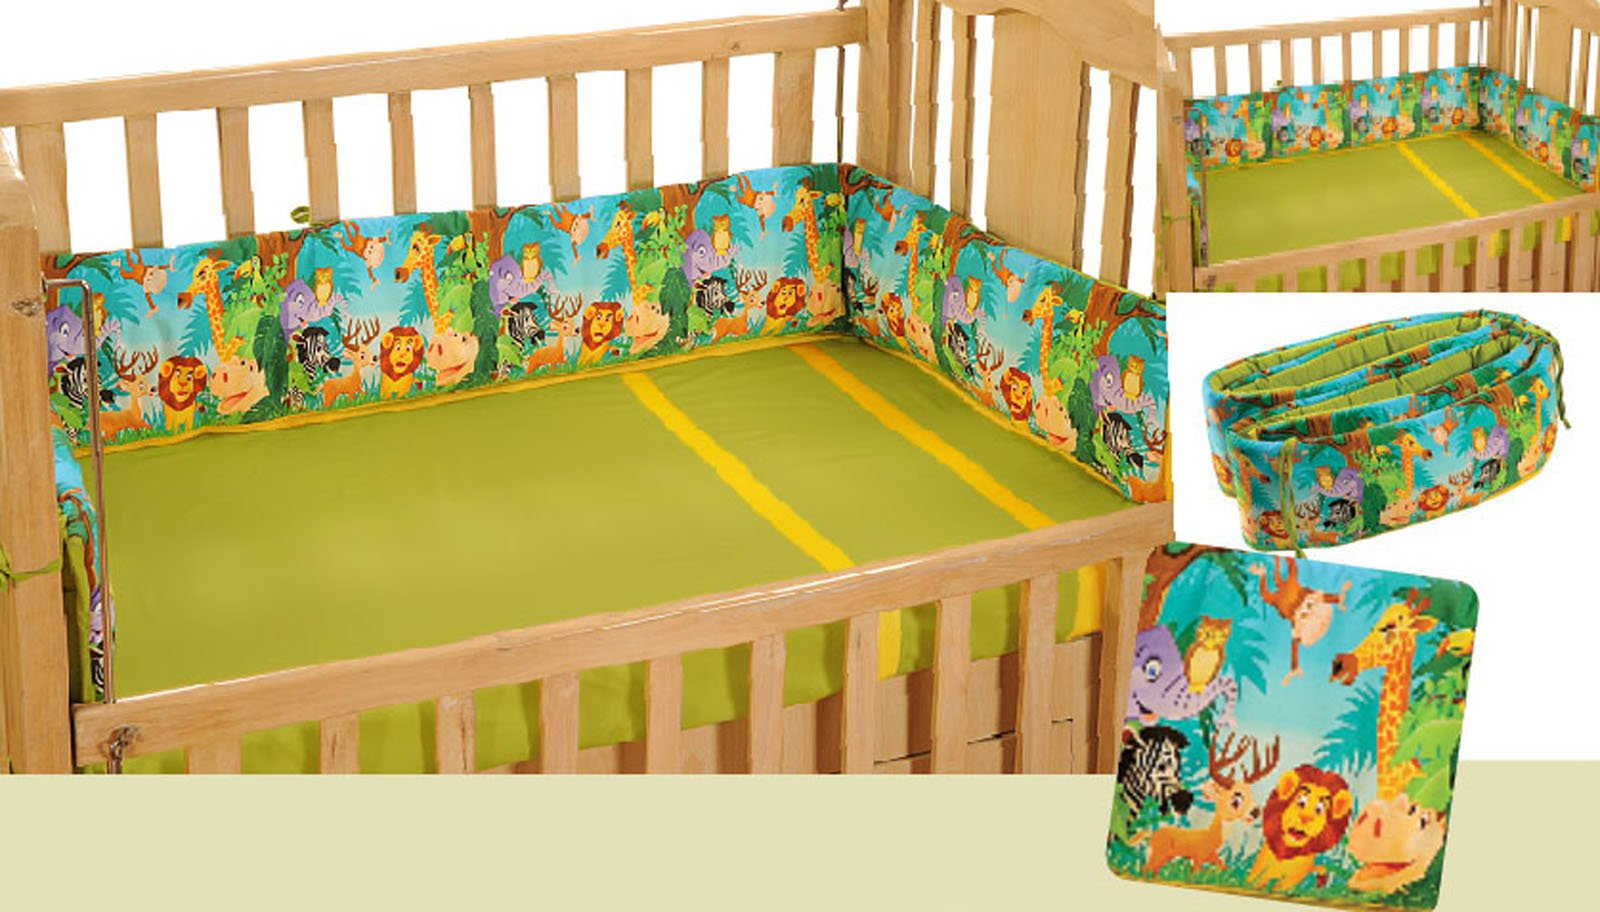 Yuga 100% Cotton 4 Sided Cot Bumper Wrap Around Breathable Jungle Safari Baby's Safe Bed